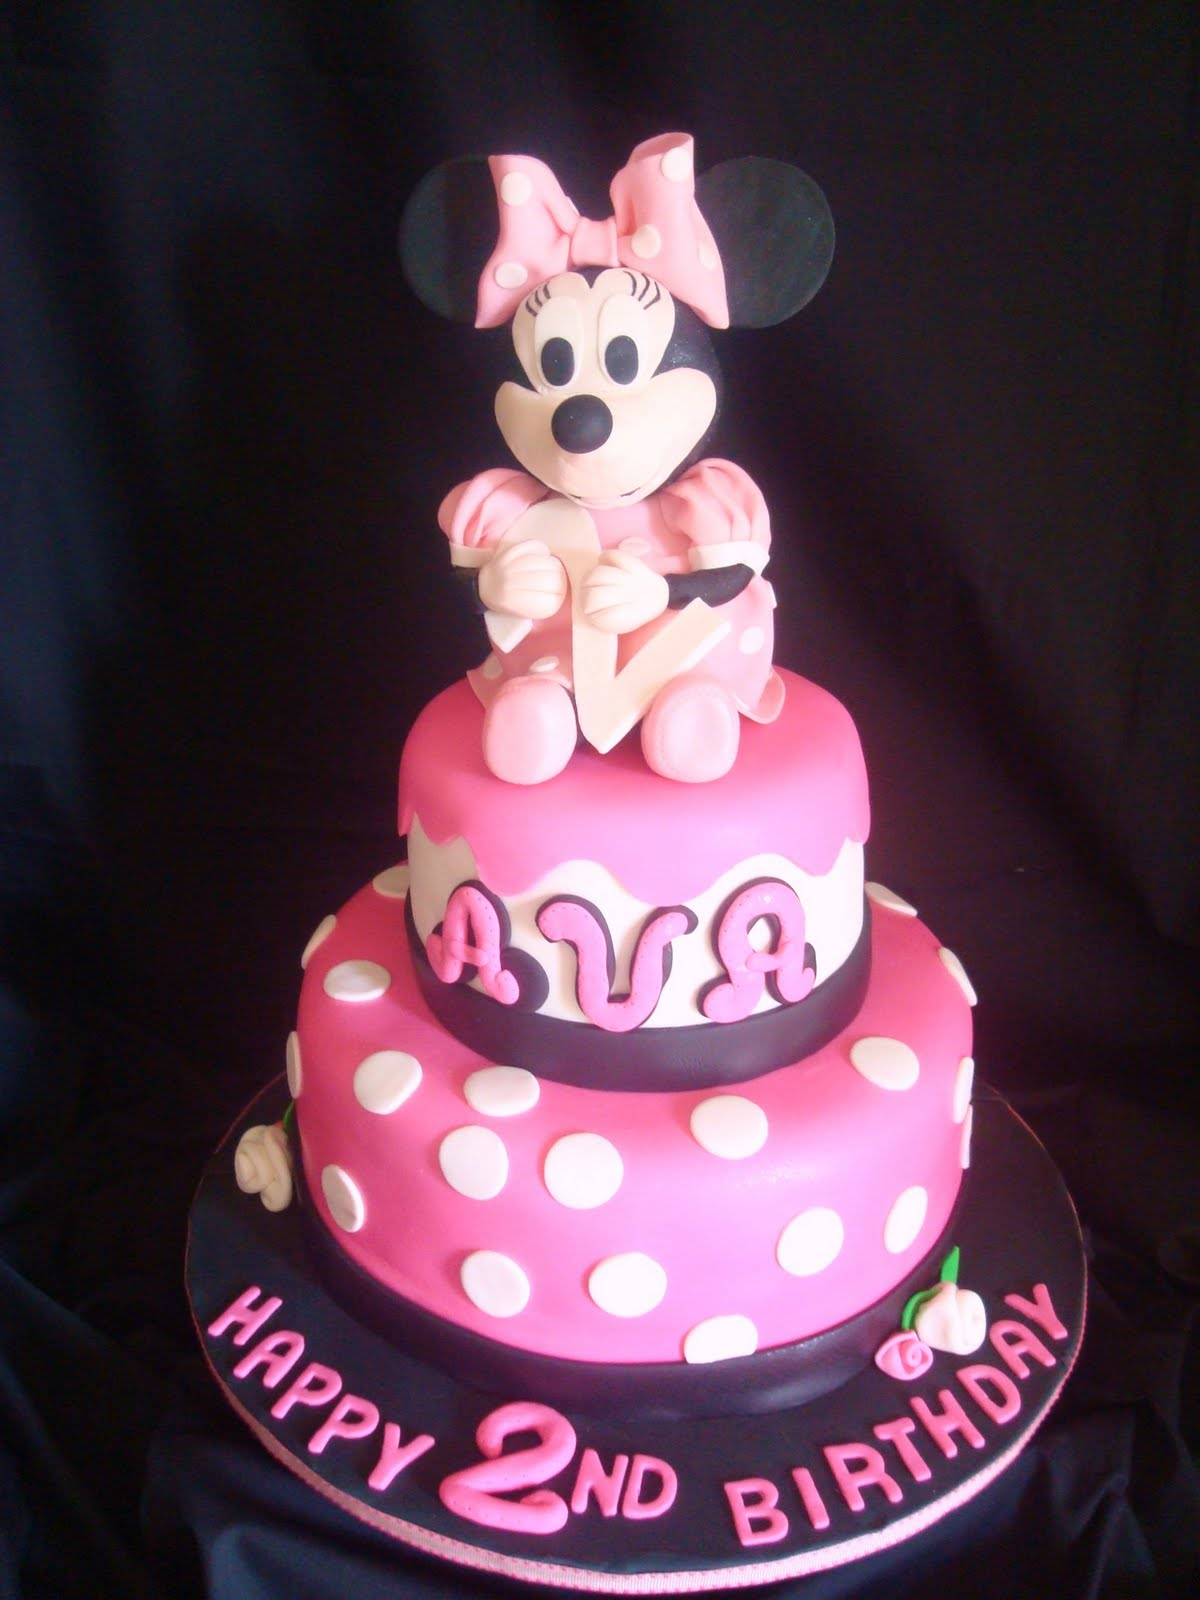 Here is my Minnie Mouse cake everyone.